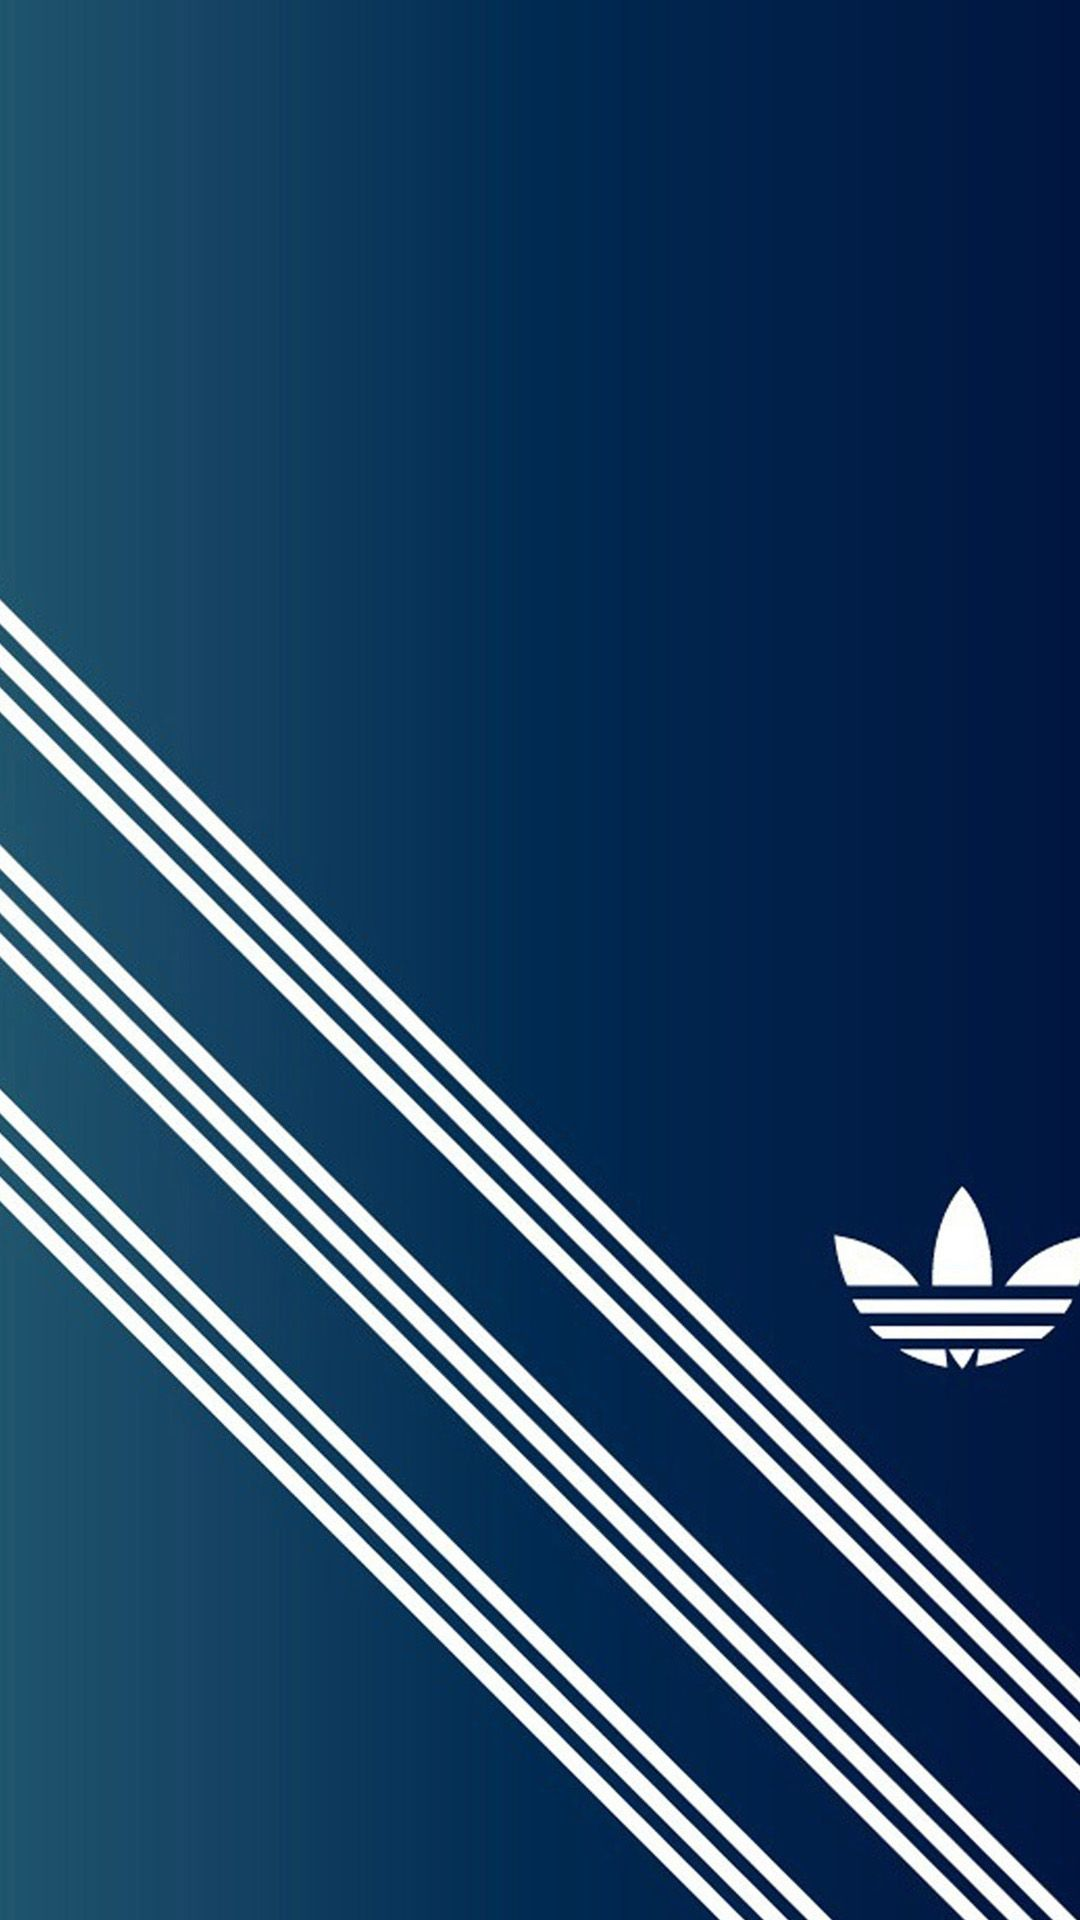 adidas htc one m8 wallpaper | wallpapers | pinterest | adidas